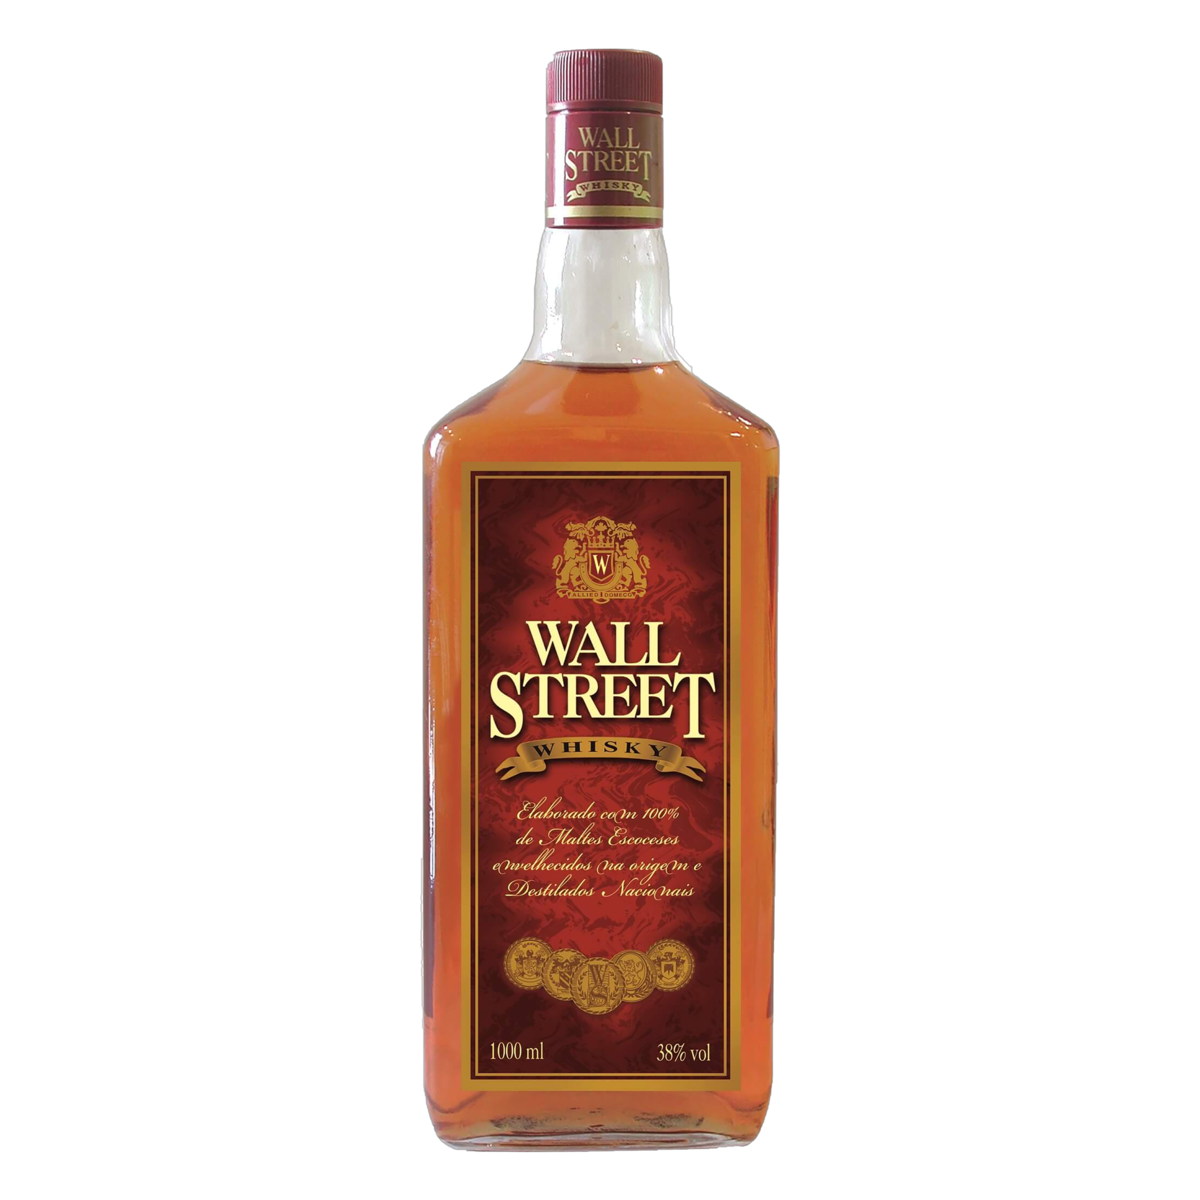 7896080002200 - WALL STREET|1000|WHISKEY 0 | WH WALL STREET